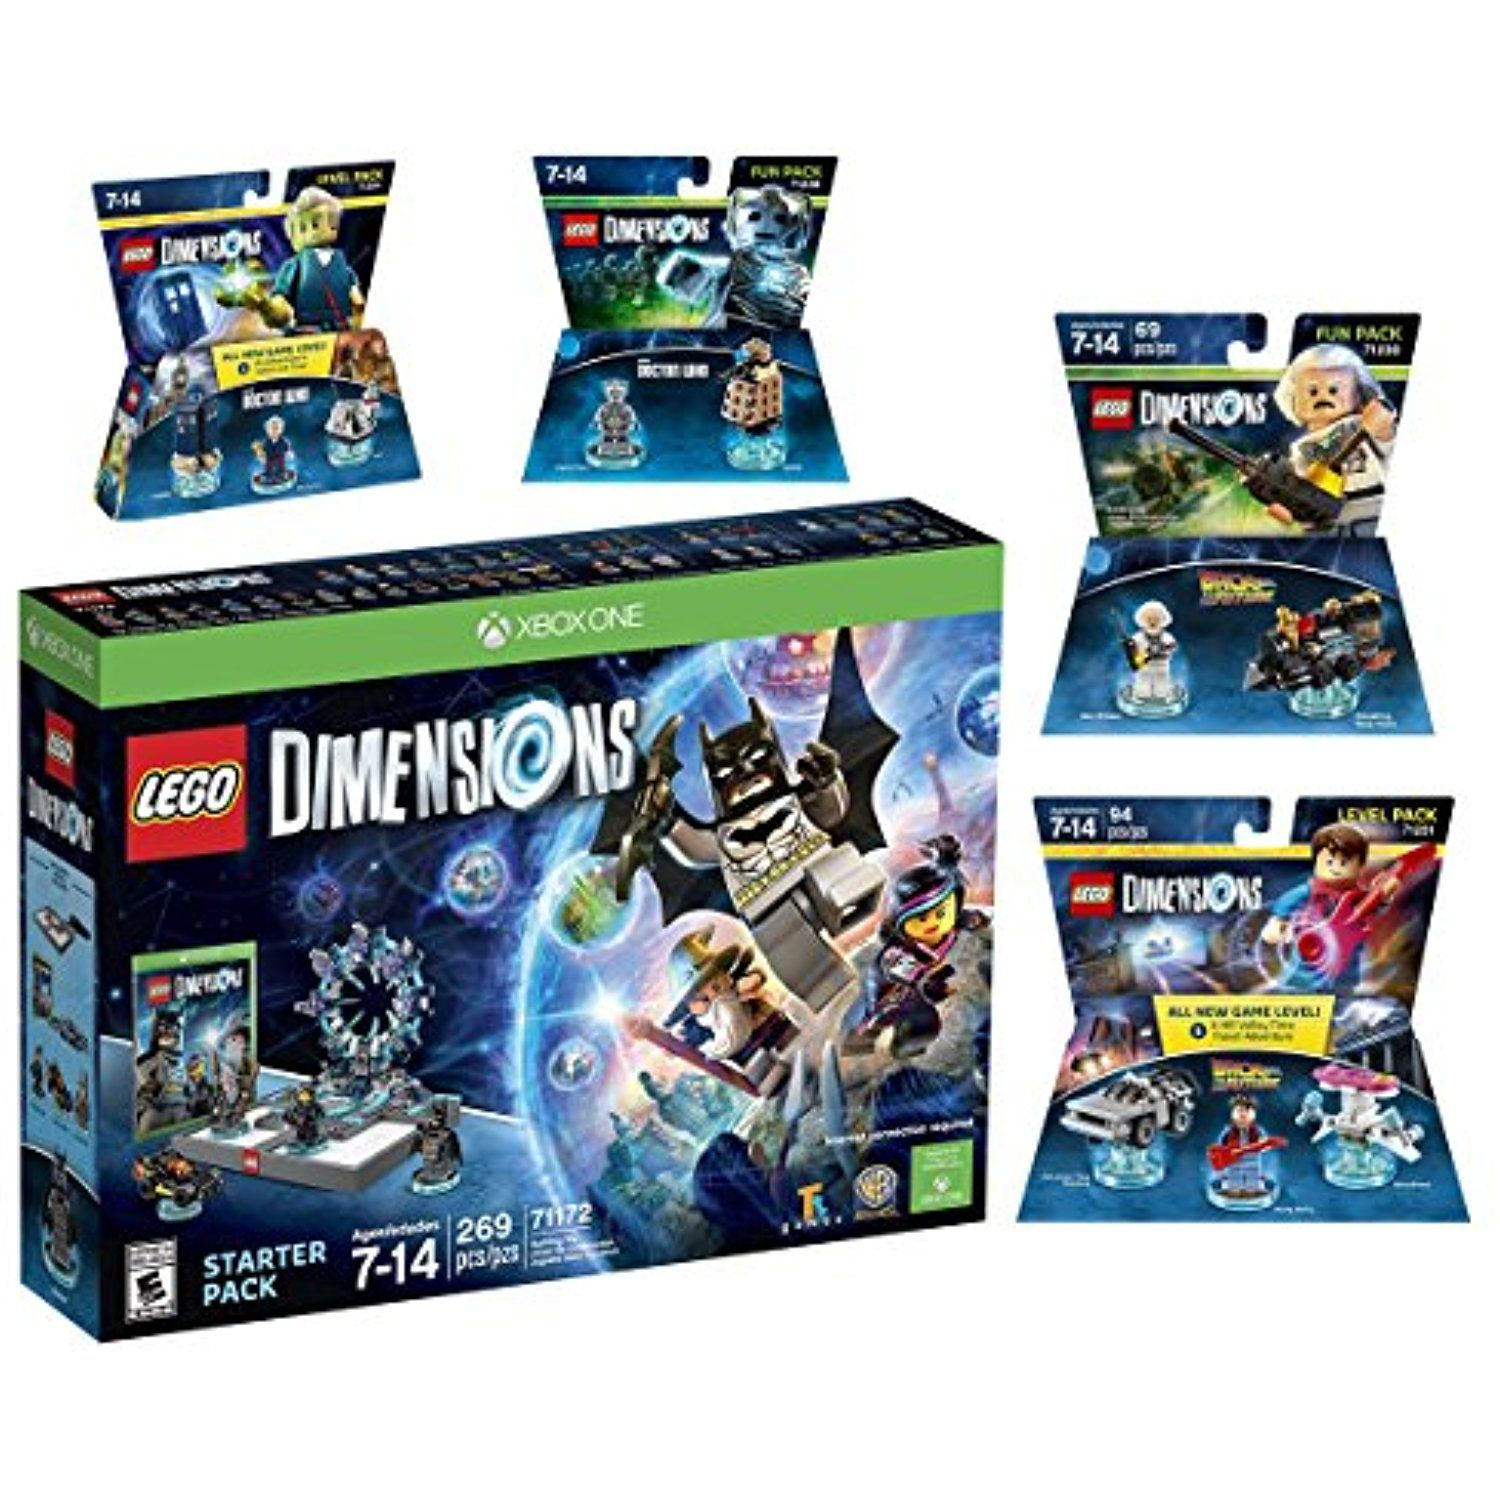 Lego Dimensions Time Traveler Starter Pack Doctor Who Level Pack Cyberman Fun Pack Back To The Future Marty Mcfly Lev Lego Dimensions Xbox One S Xbox One